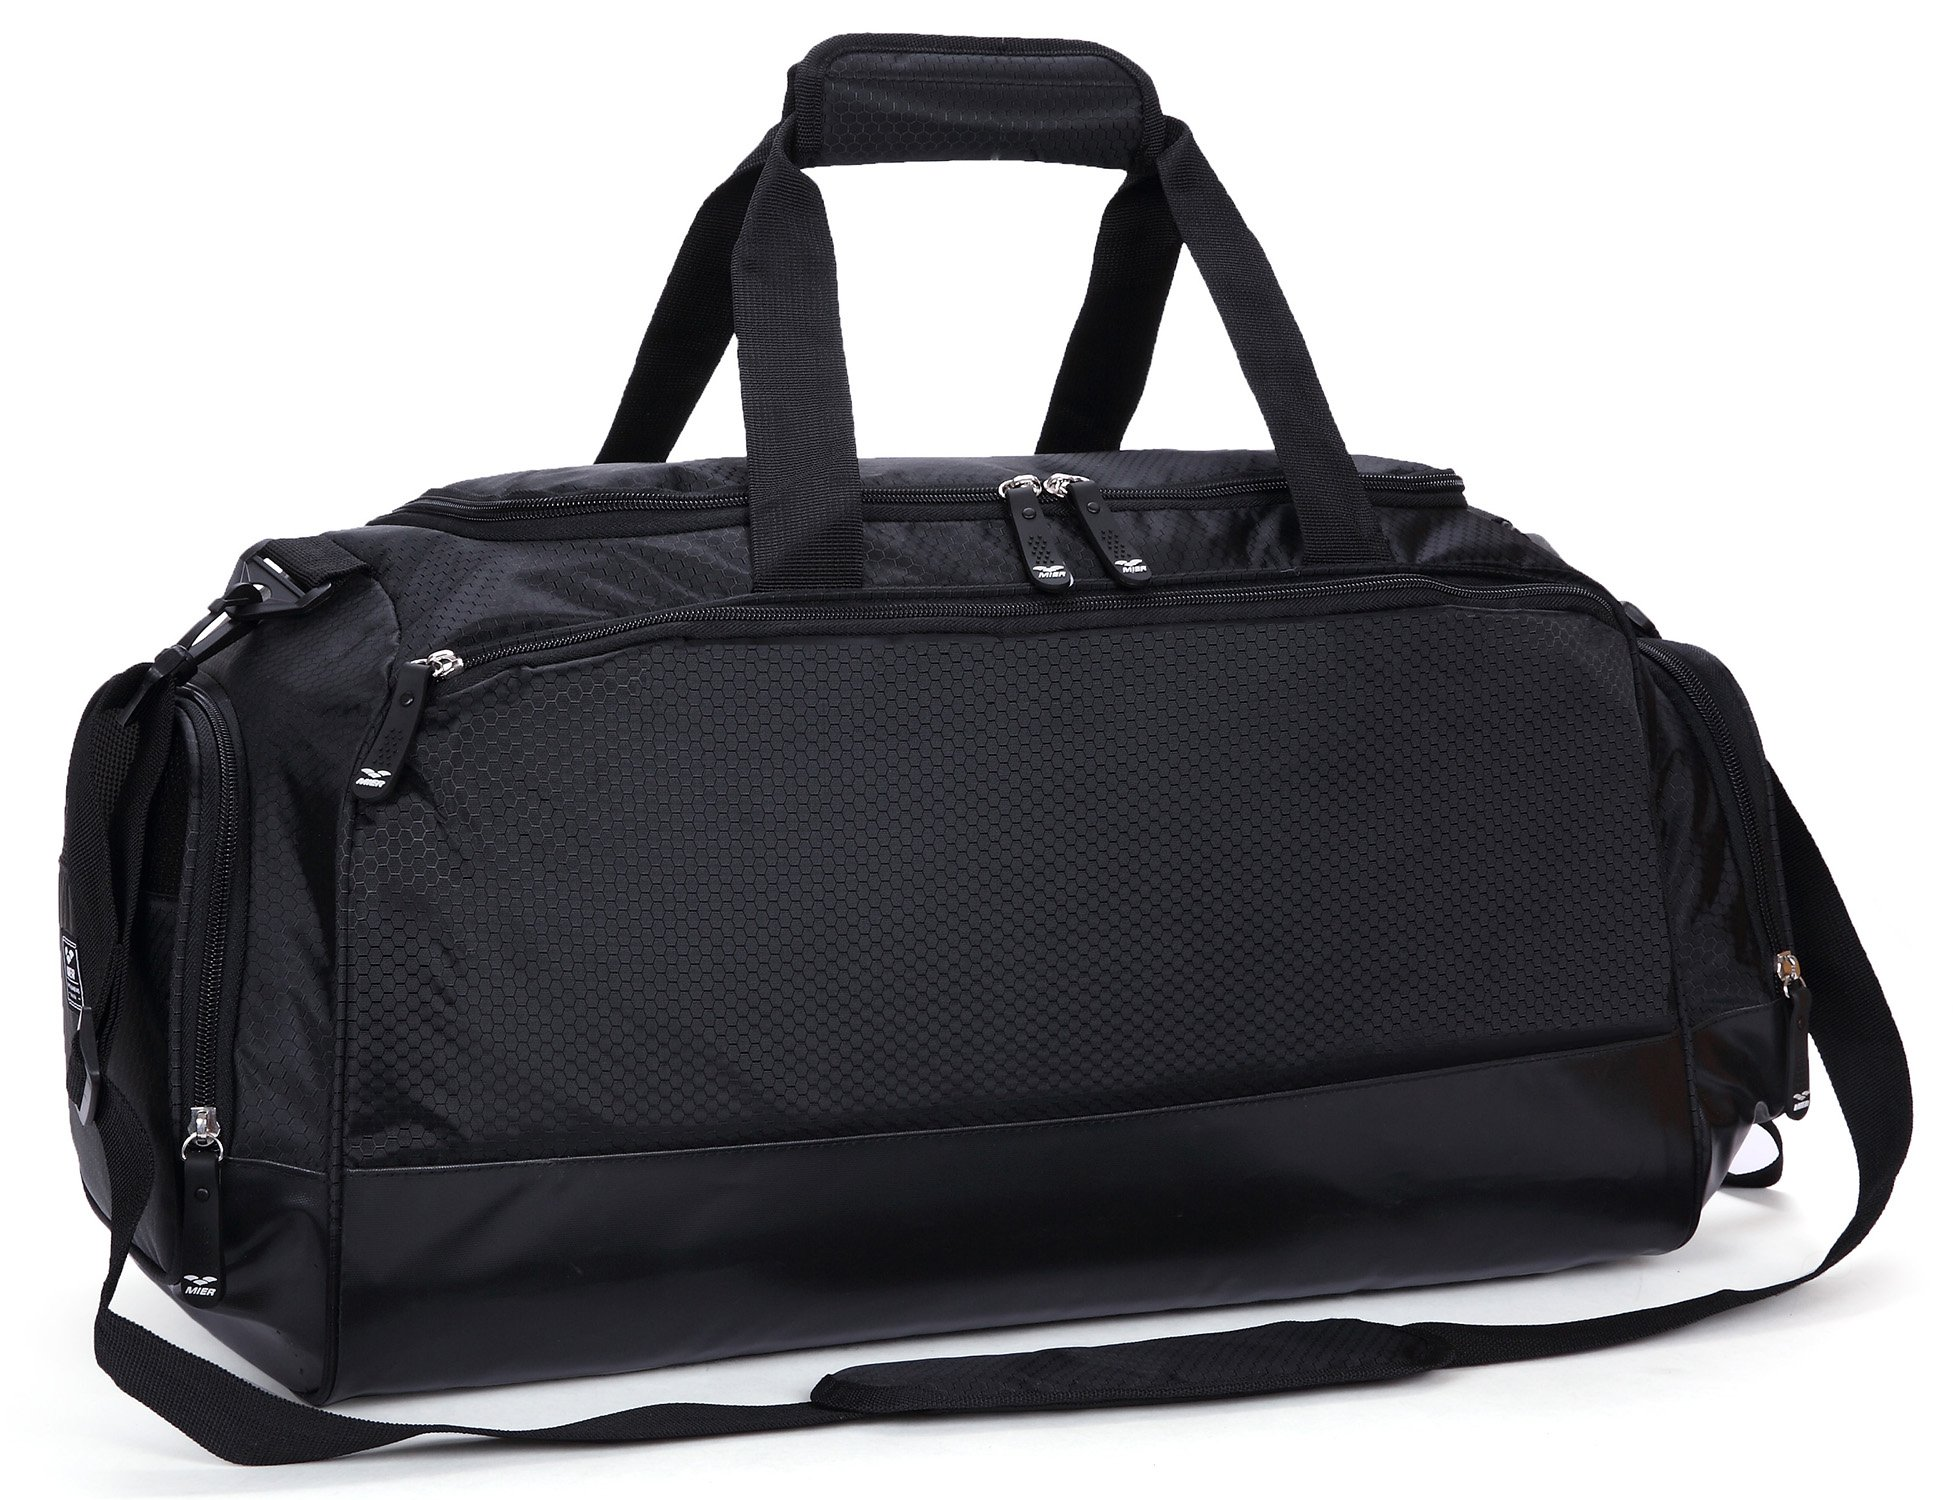 Galleon - MIER Gym Bag With Shoe Compartment Men Travel Sports Duffel, 24  Inch, Black 0dd182fbb4